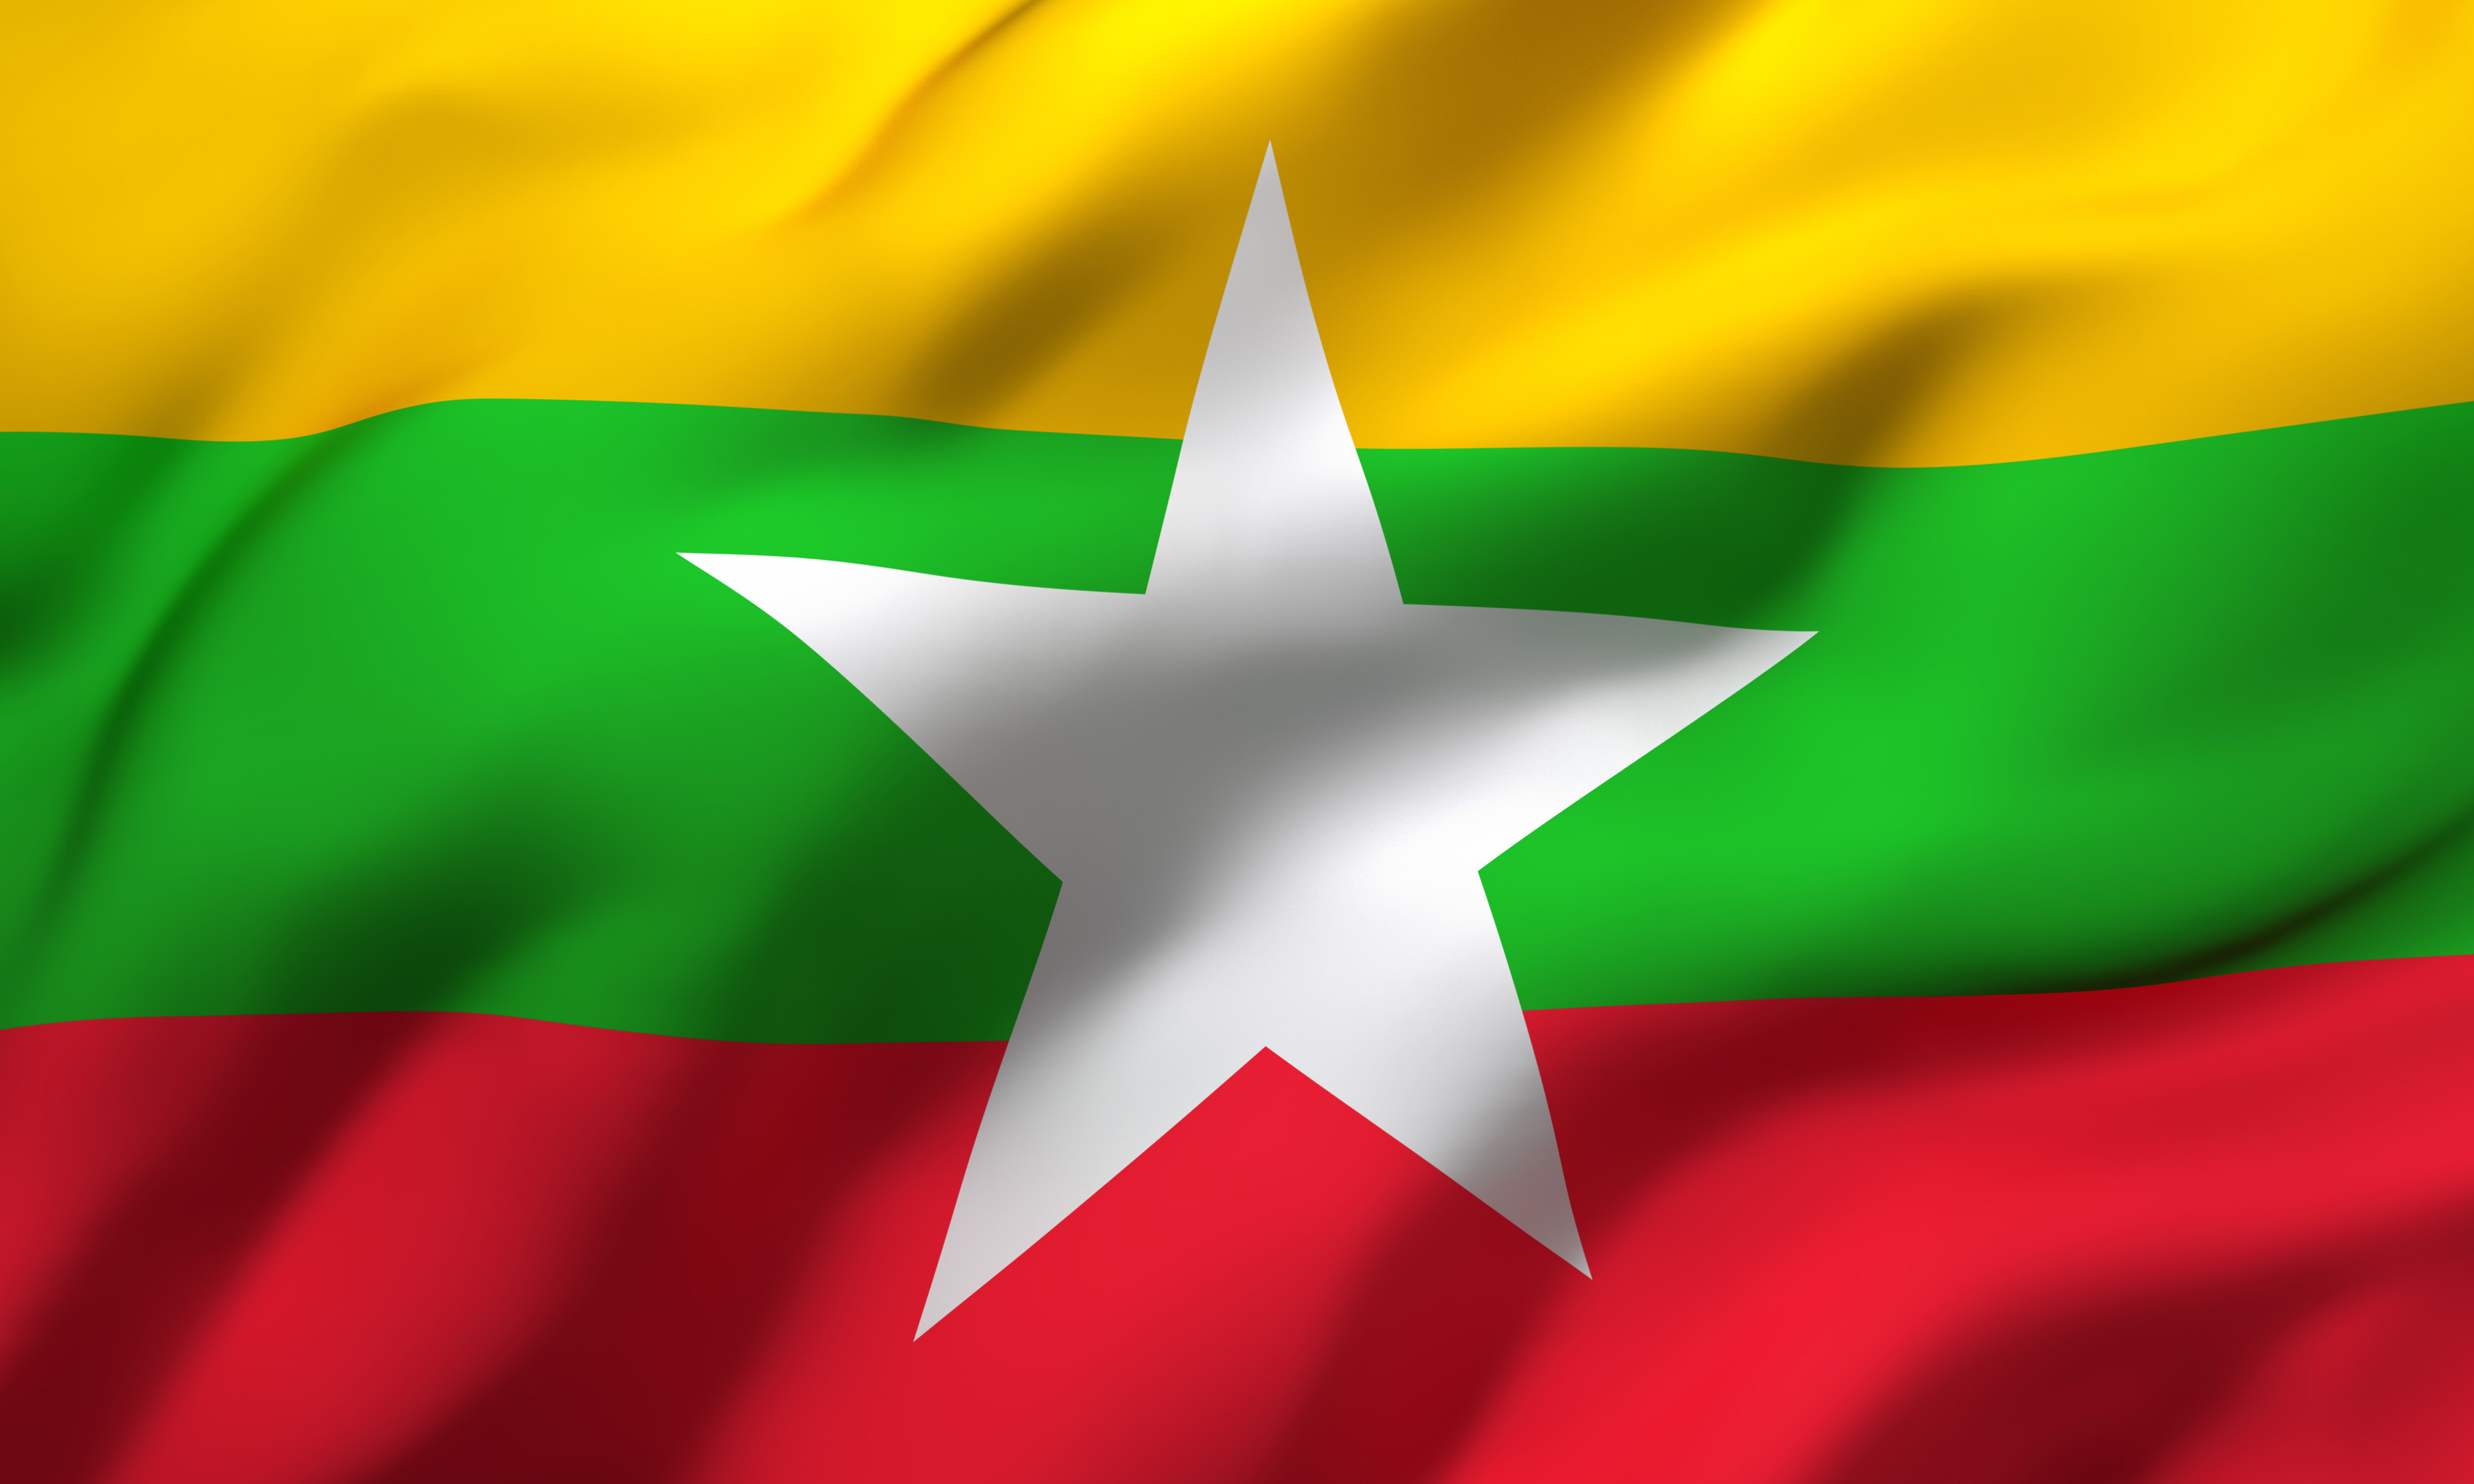 Flag of Myanmar blowing in the wind. Full page Myanma flying flag. 3D illustration.